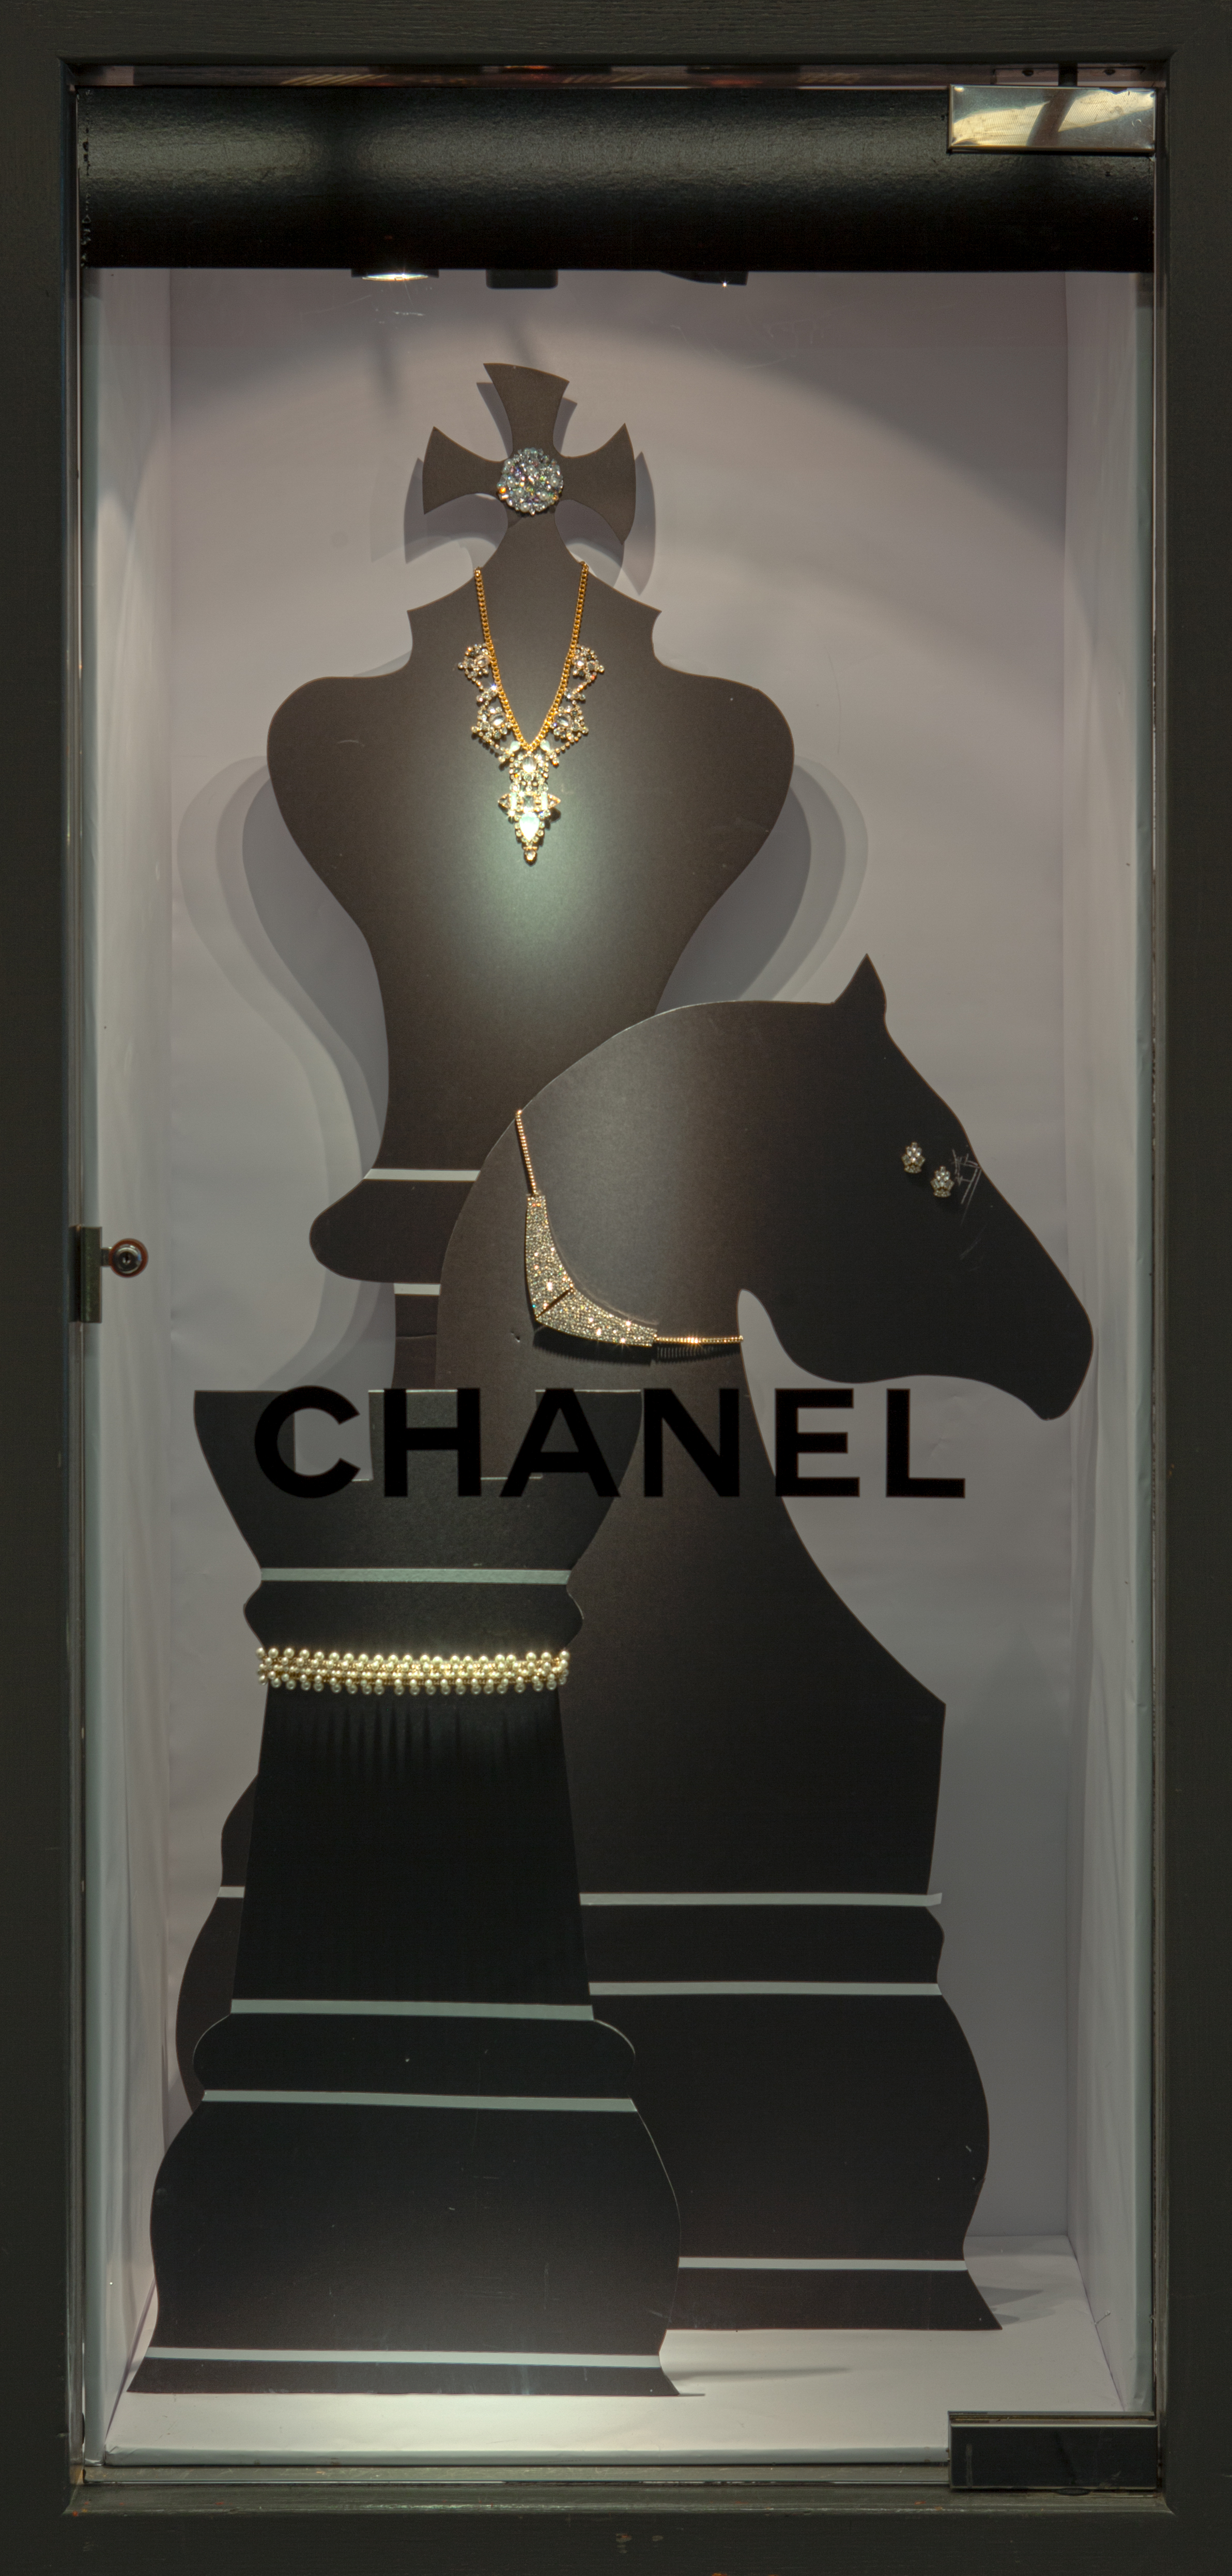 Chanel used chess pieces to display their jewelry, because creativity has no limit when it comes to jewelry display ideas.